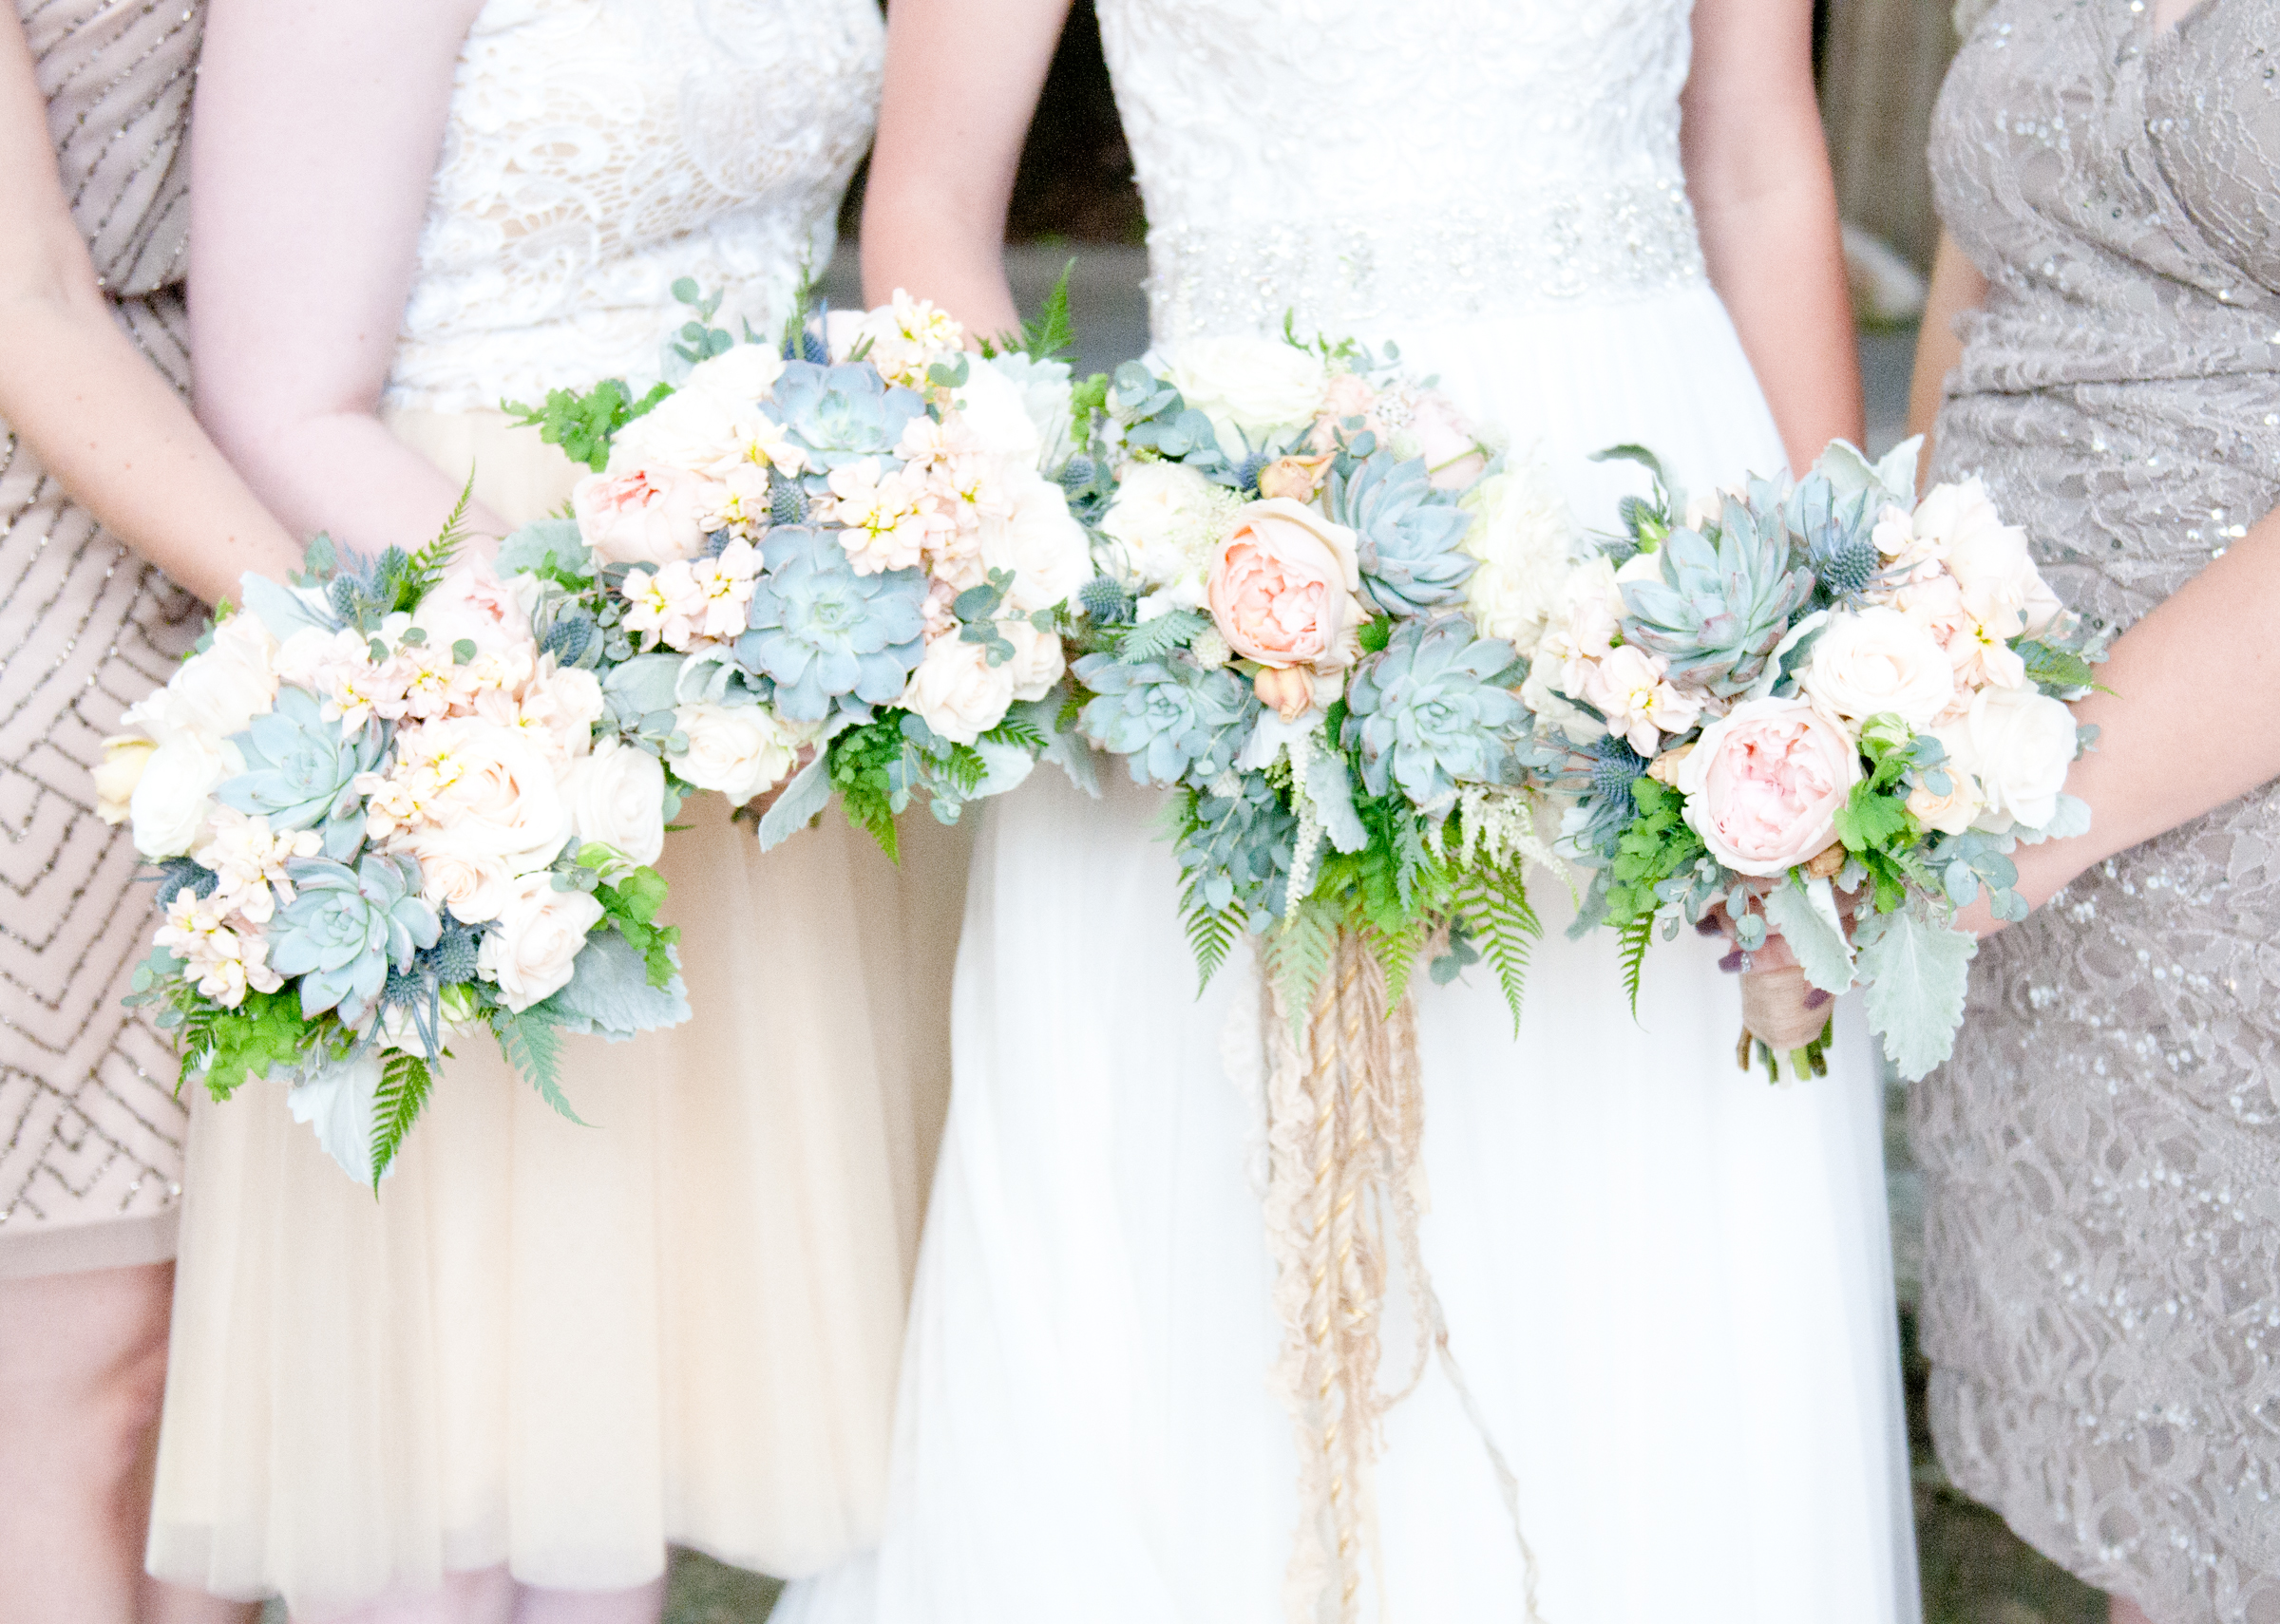 Natalie McMullin Photography - Dik Wedding (1 of 1)